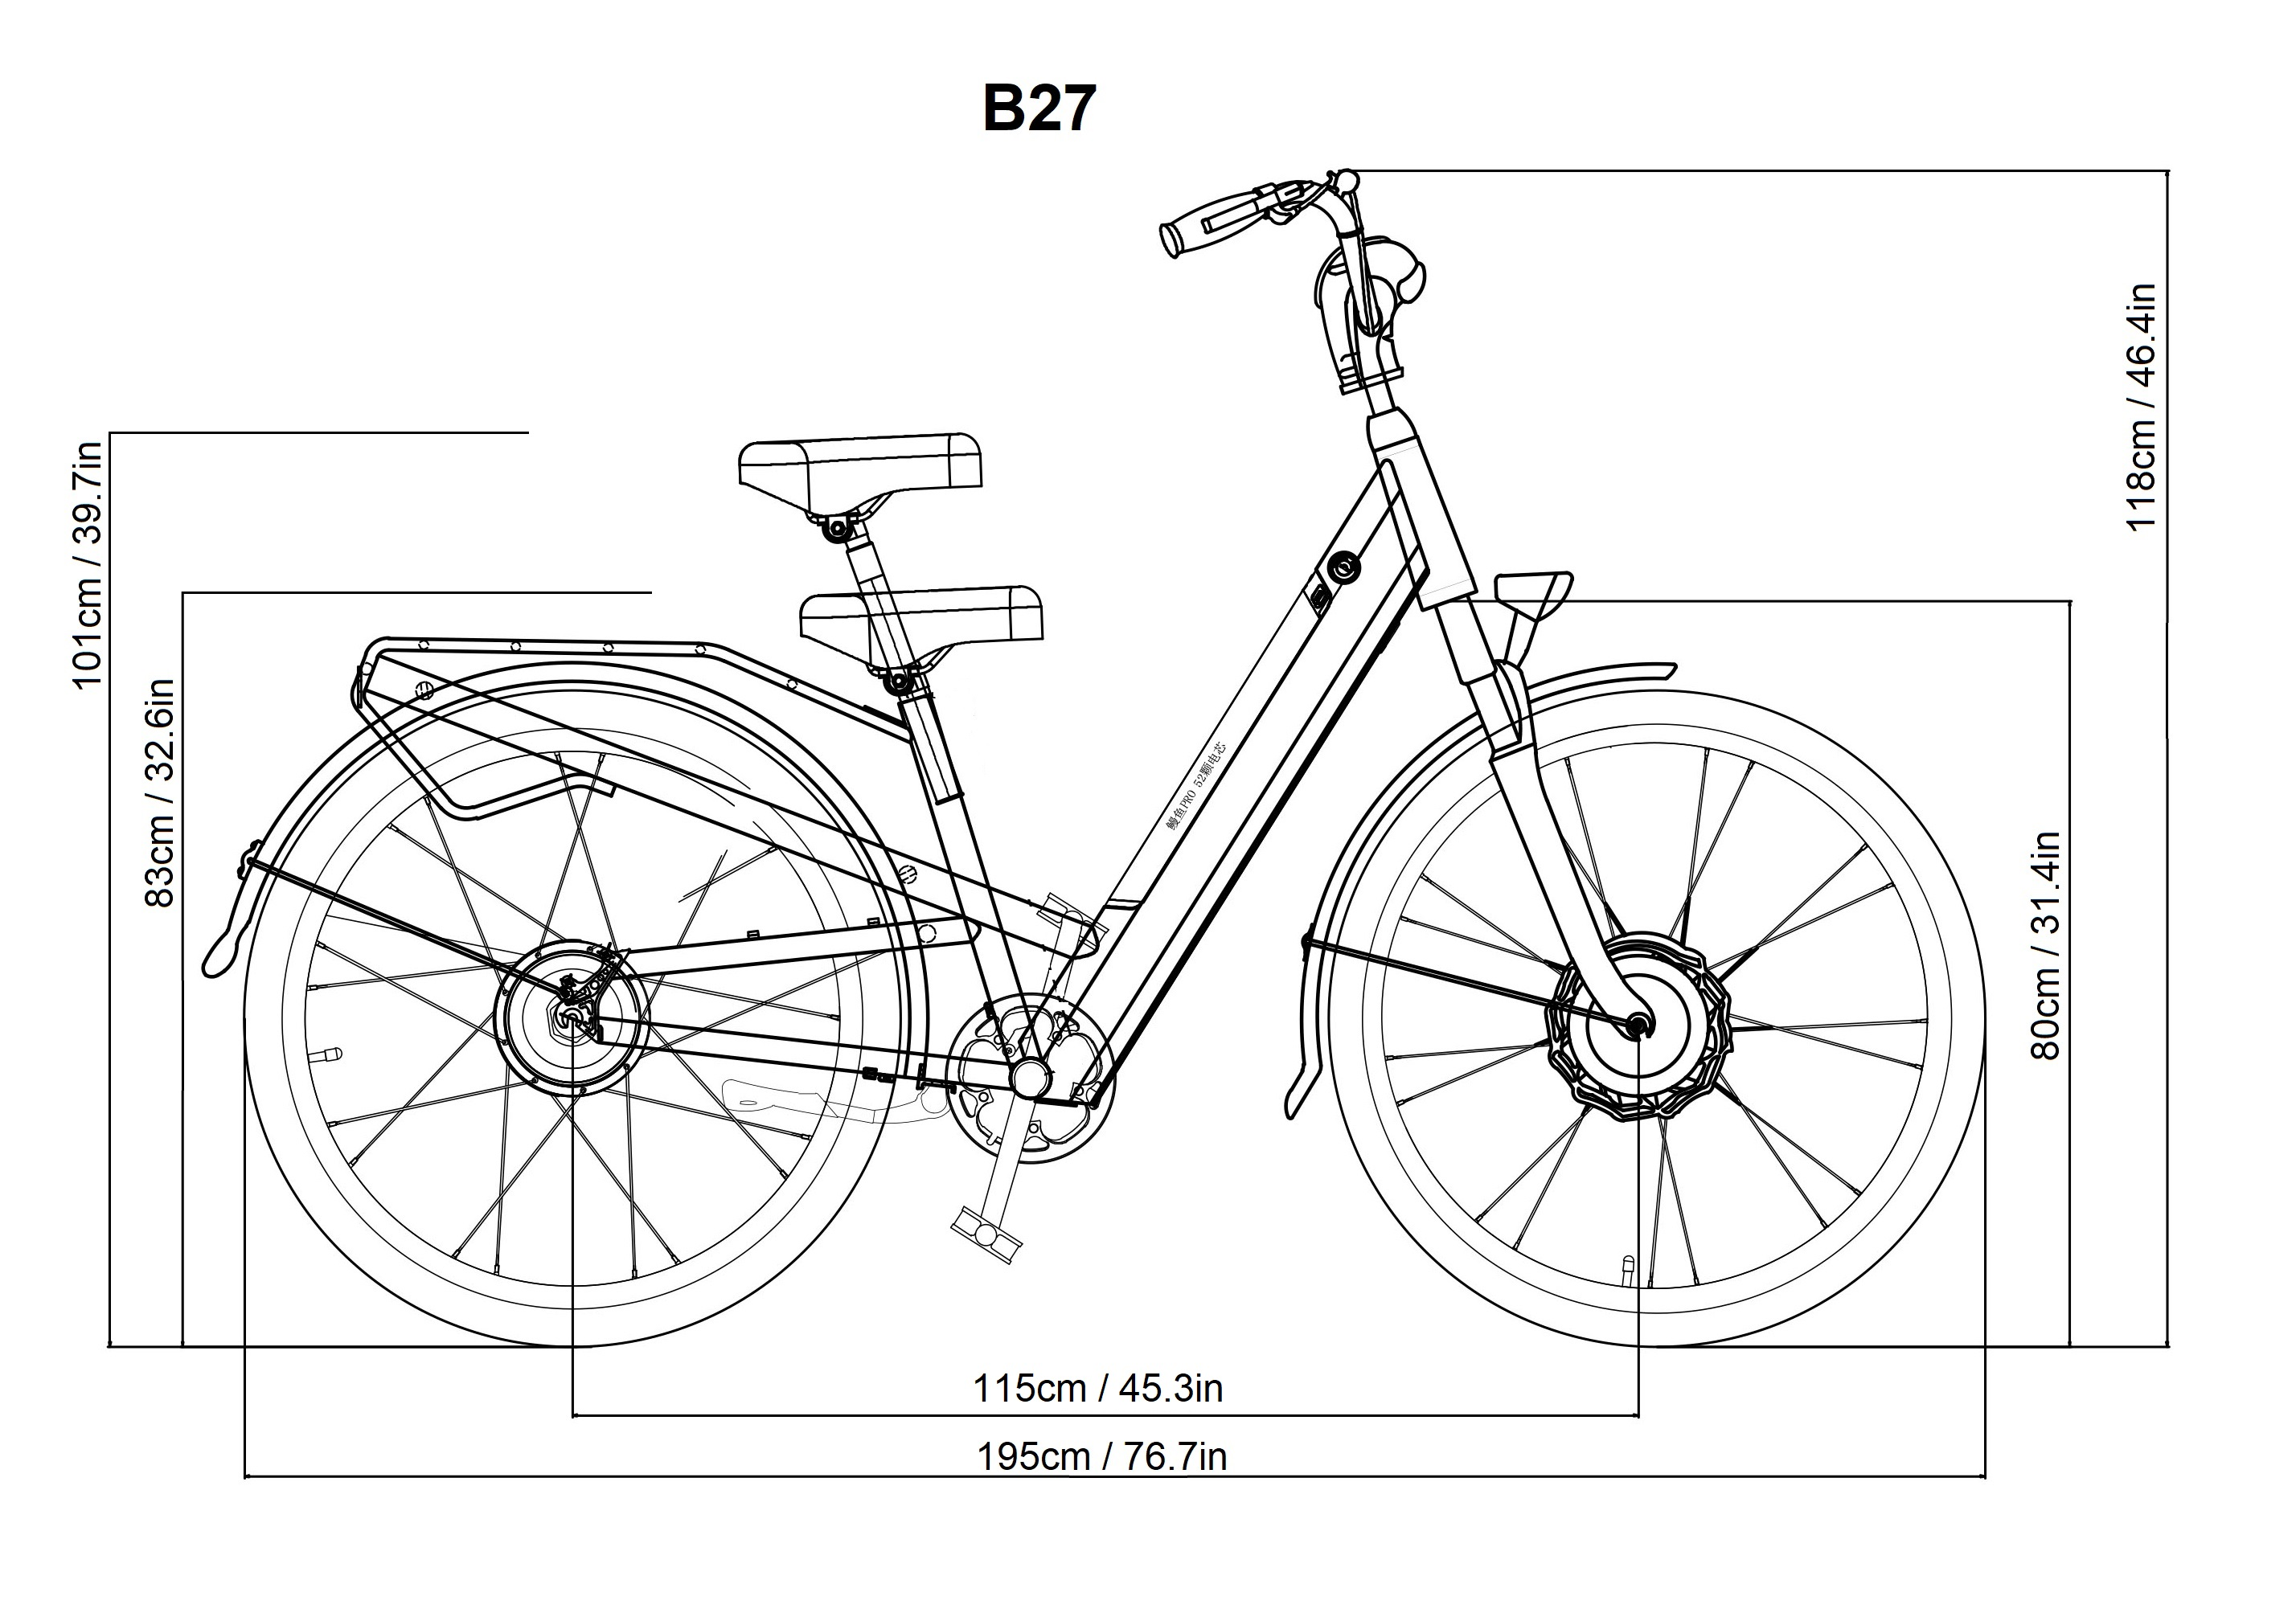 Bagi Bike B27 Cruiser Electric Bicycle Dimensions